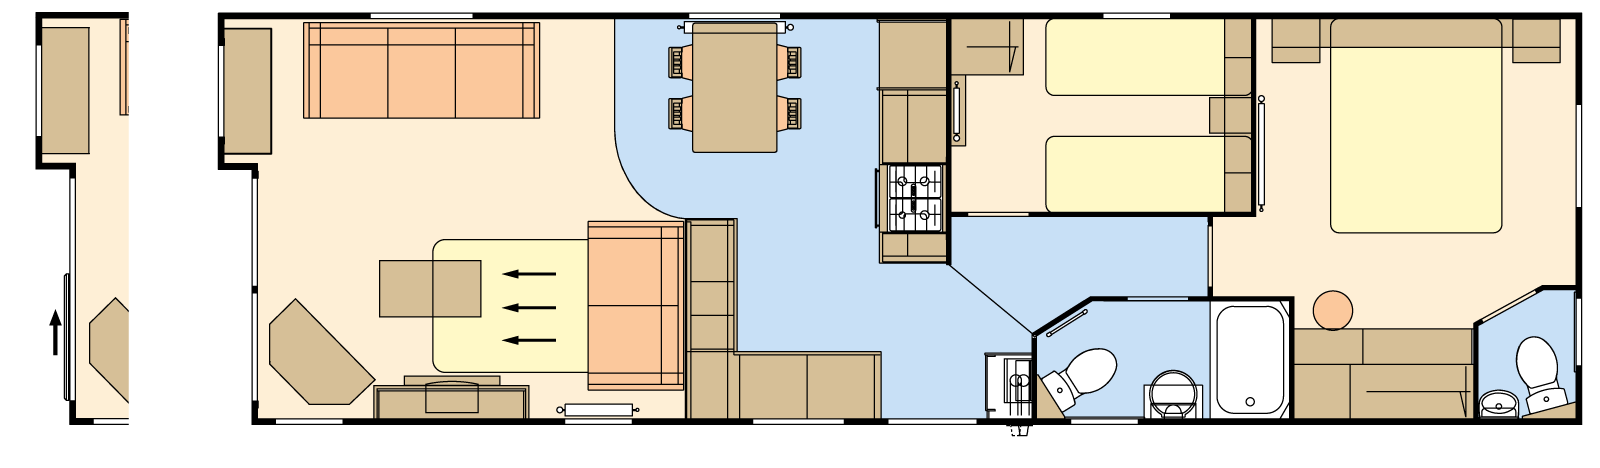 38 × 12 – 2 bedroom/6 berth